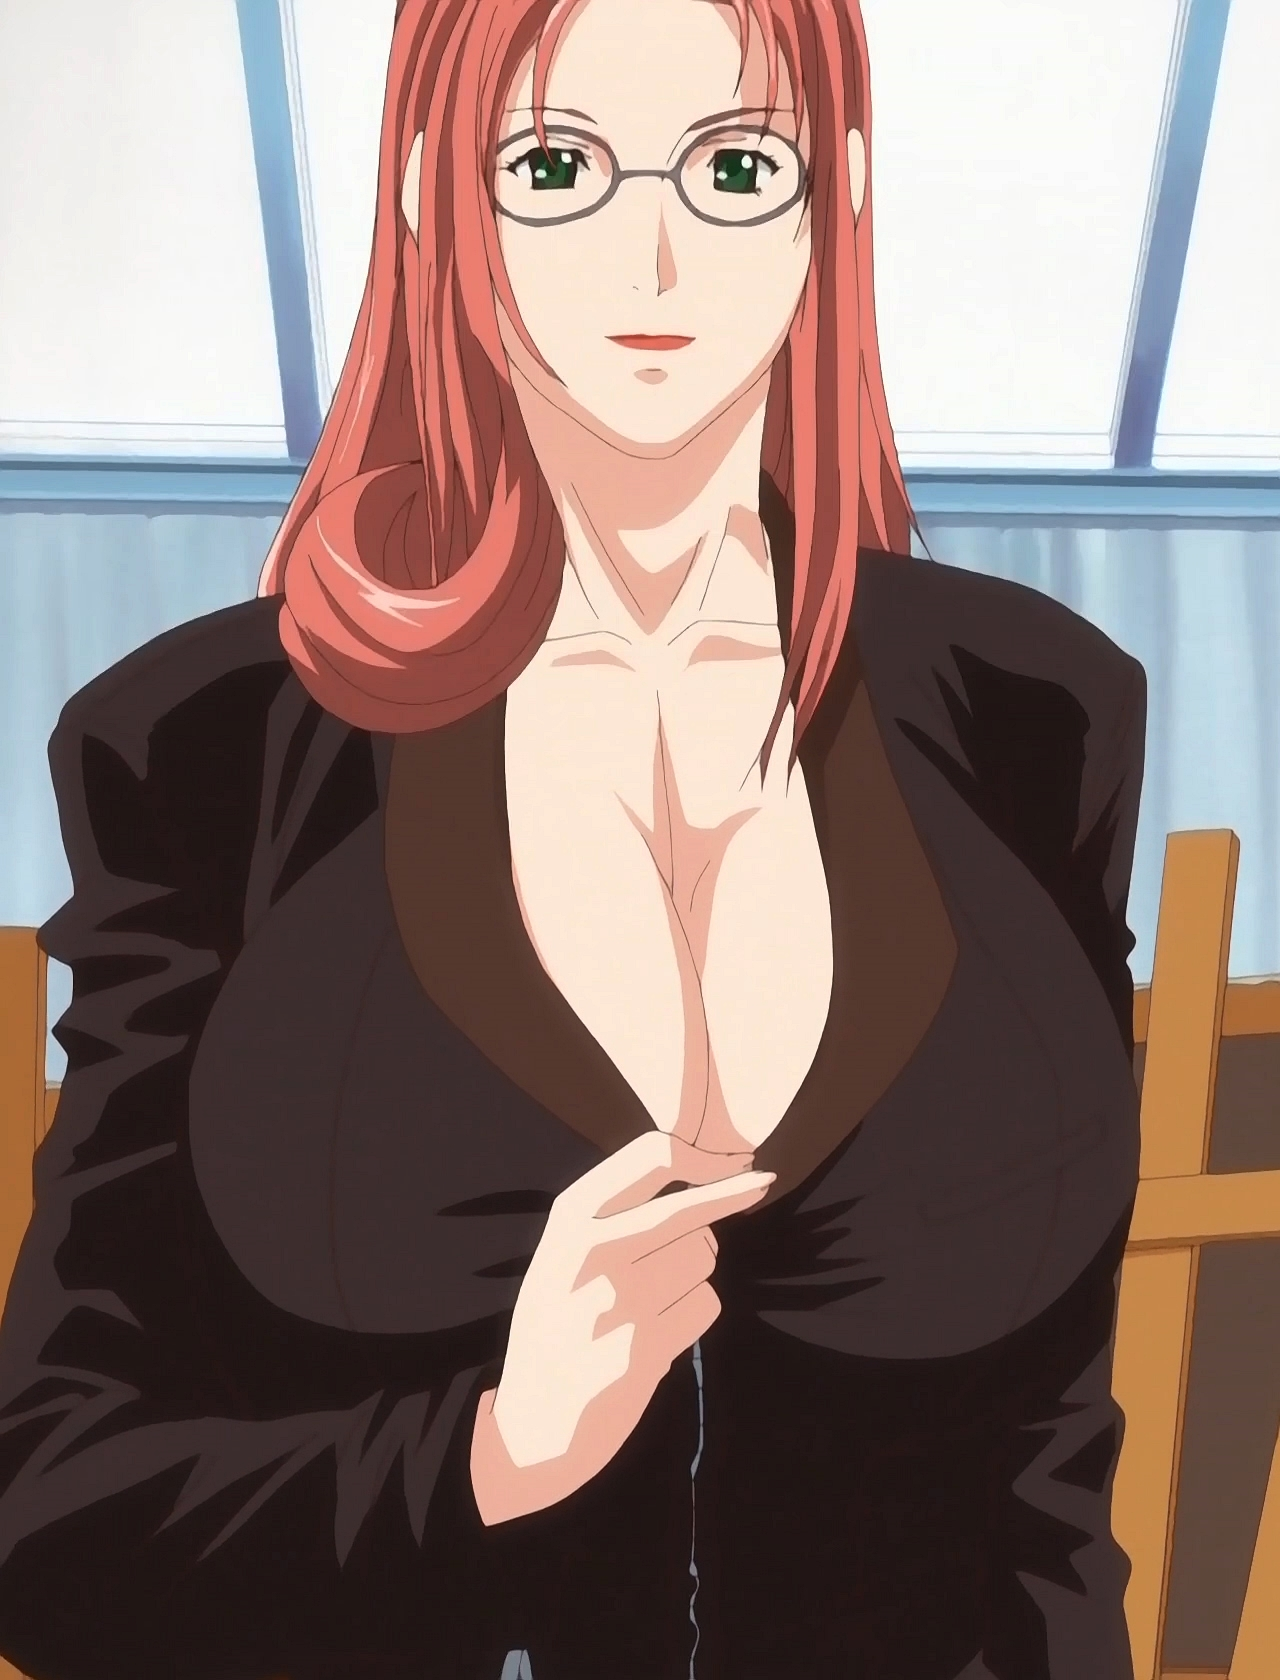 Cleavage episode 2